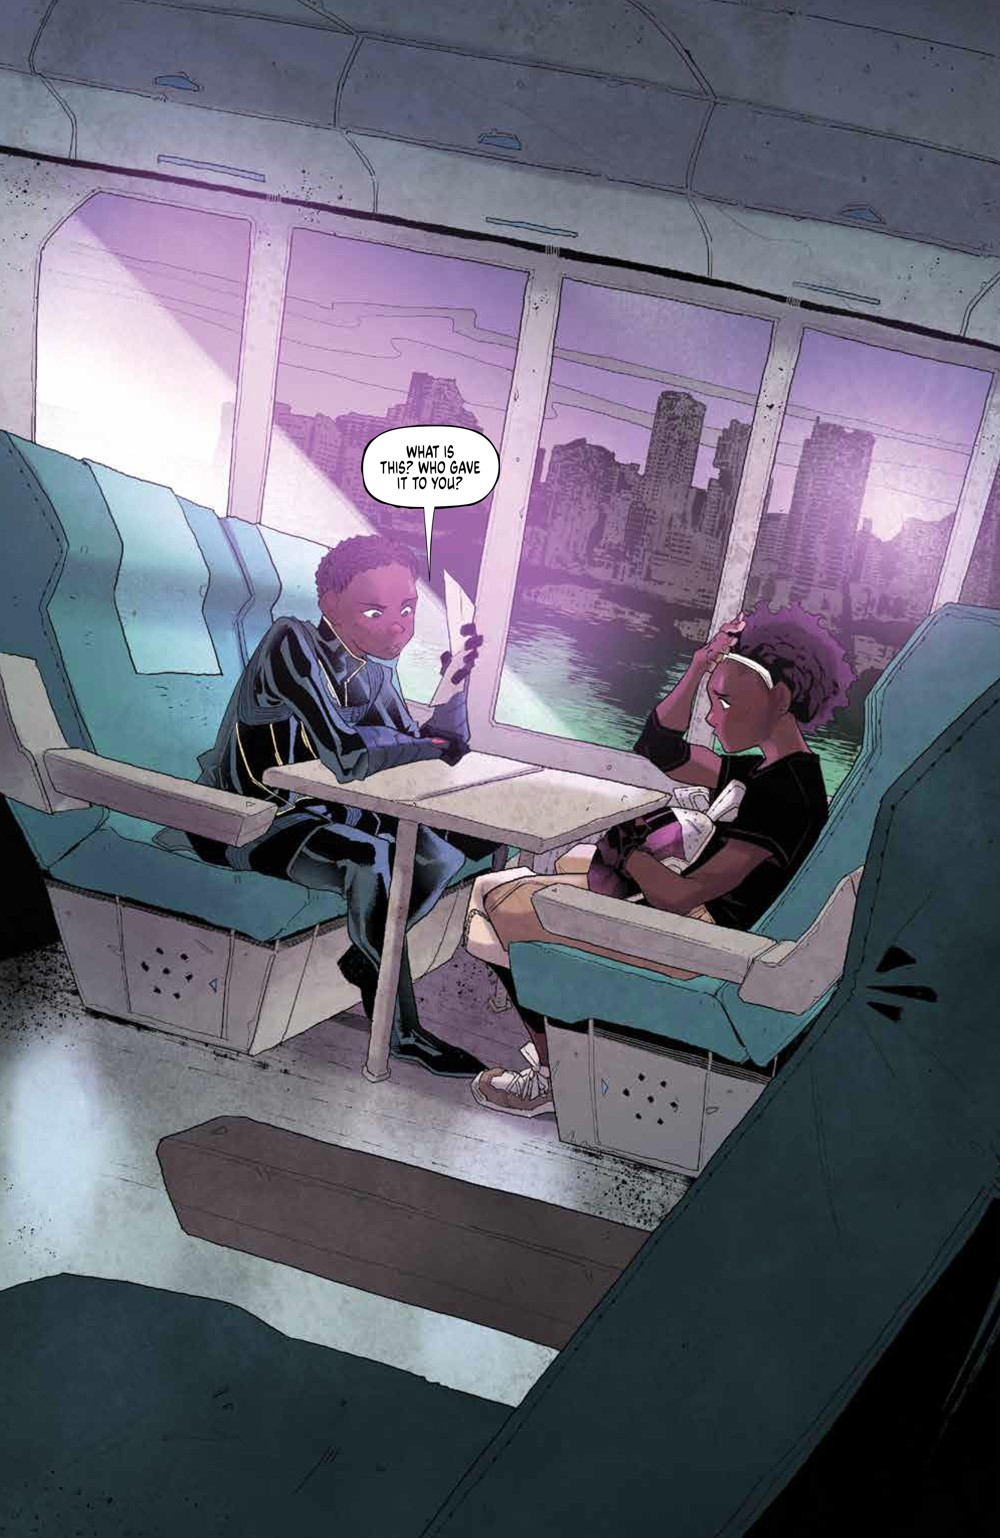 Eve_004_PRESS_3 ComicList Previews: EVE #4 (OF 5)